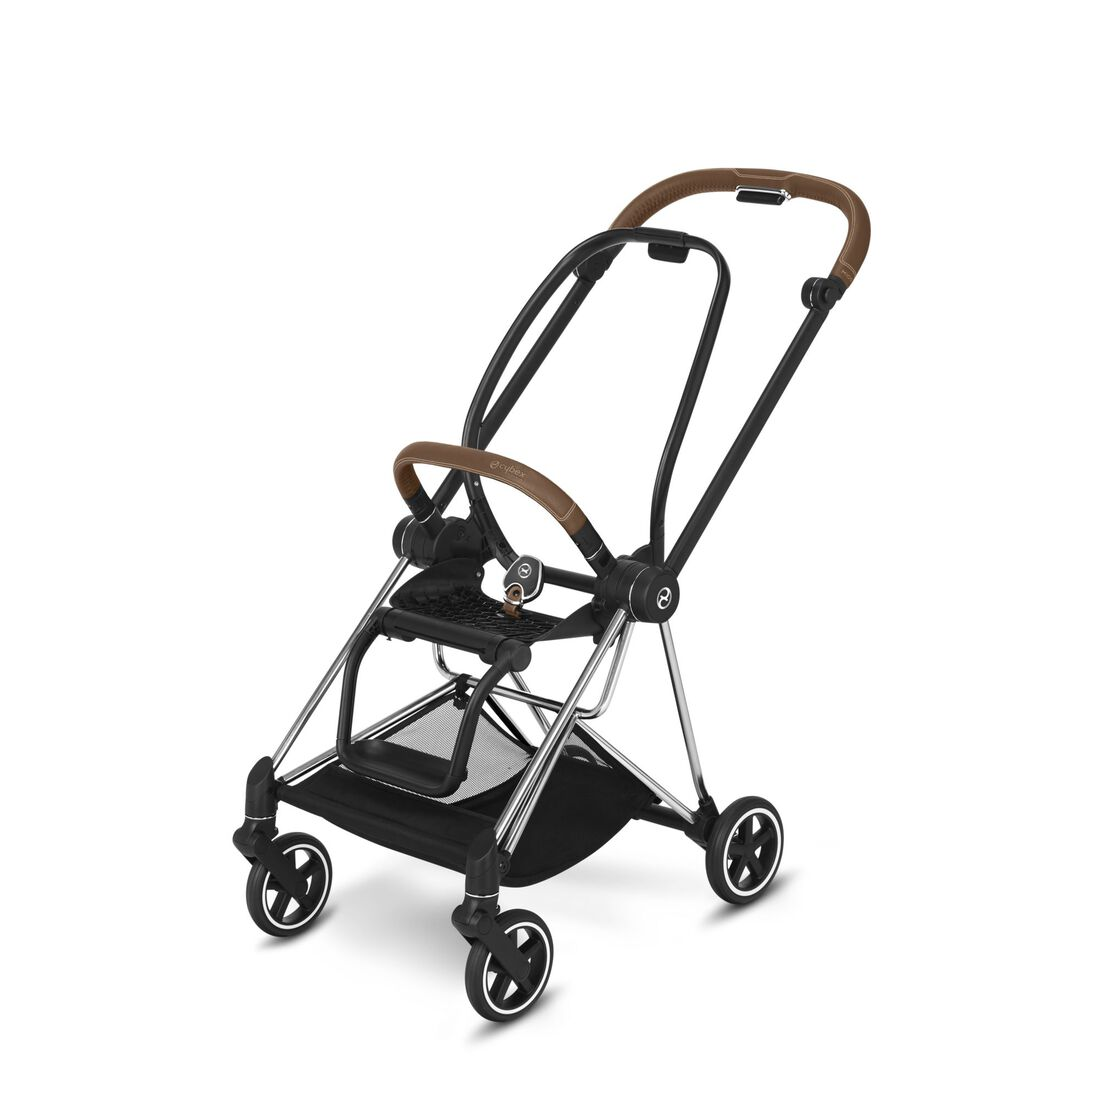 CYBEX Mios Rahmen - Chrome With Brown Details in Chrome With Brown Details large Bild 1